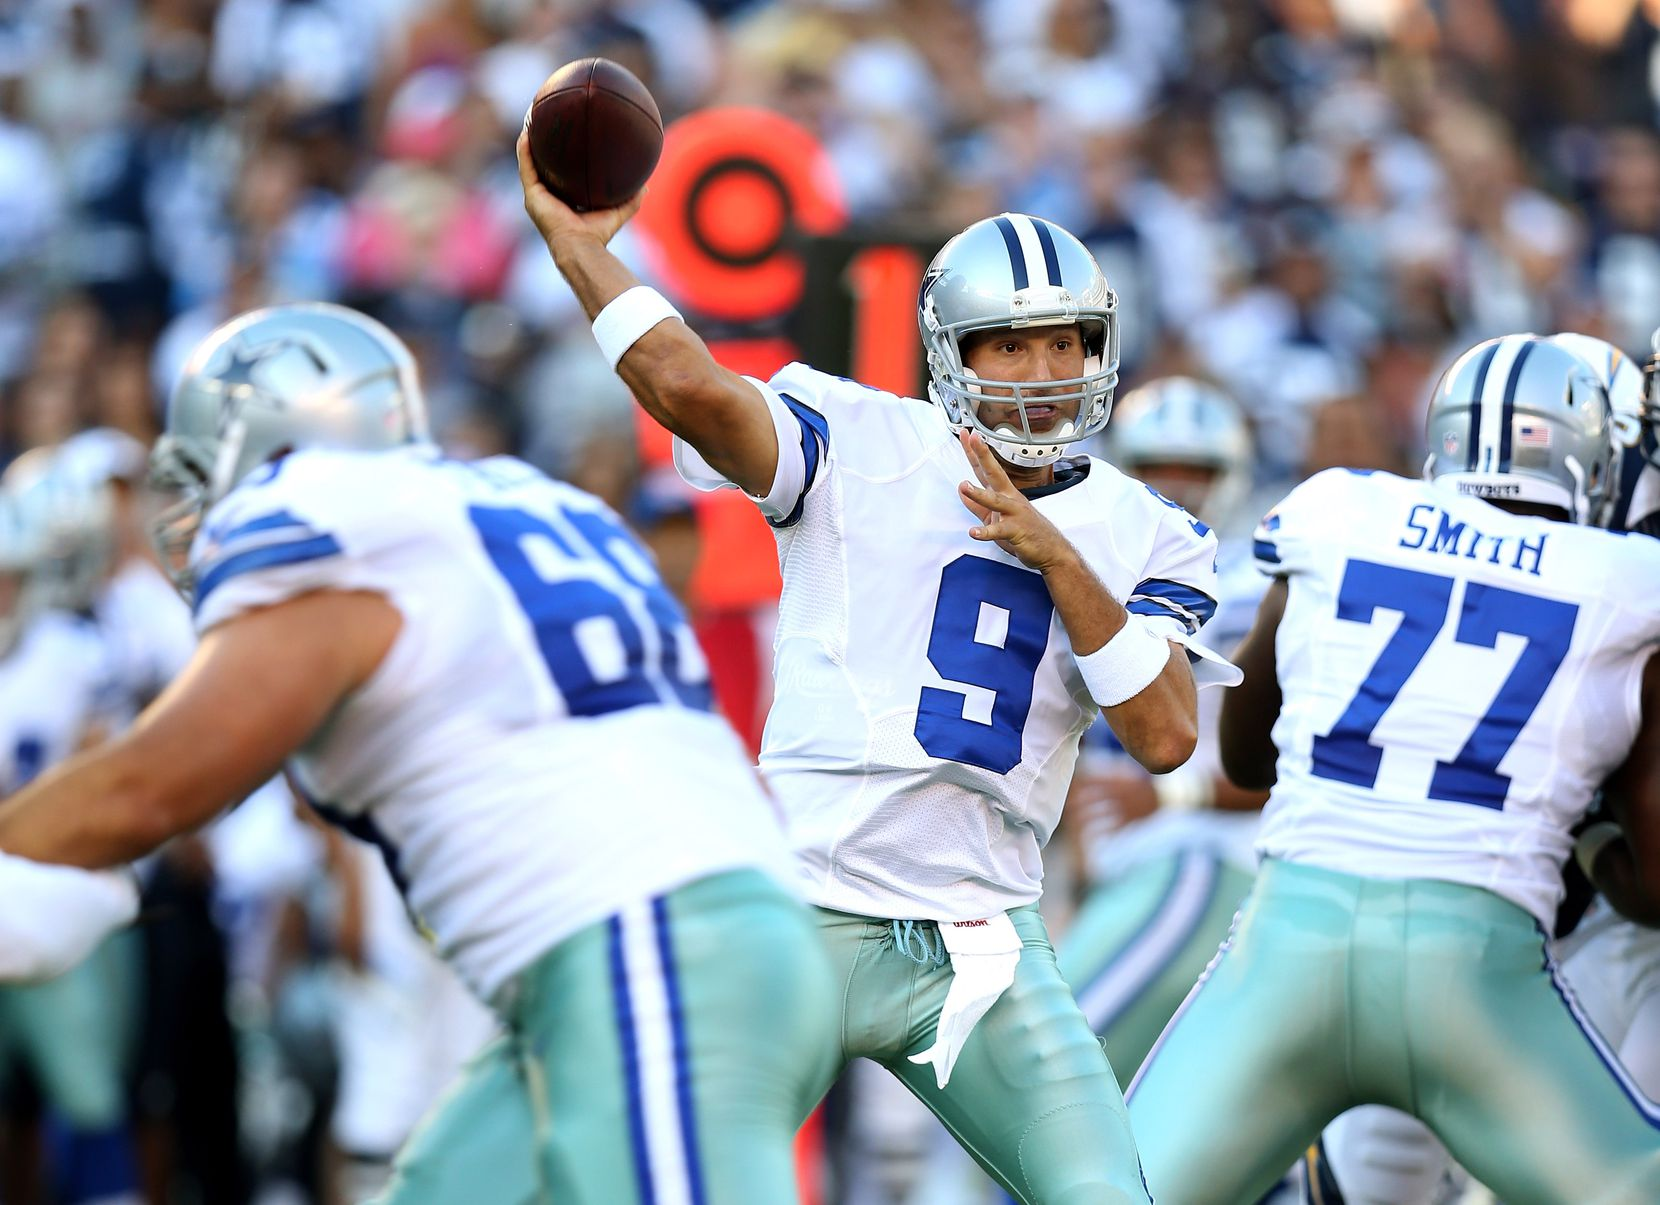 SAN DIEGO, CA - AUGUST 18: Quarterback Tony Romo #9 of the Dallas Cowboys throws a pass against the San Diego Chargers at Qualcomm Stadium on August 18, 2012 in San Diego, California.